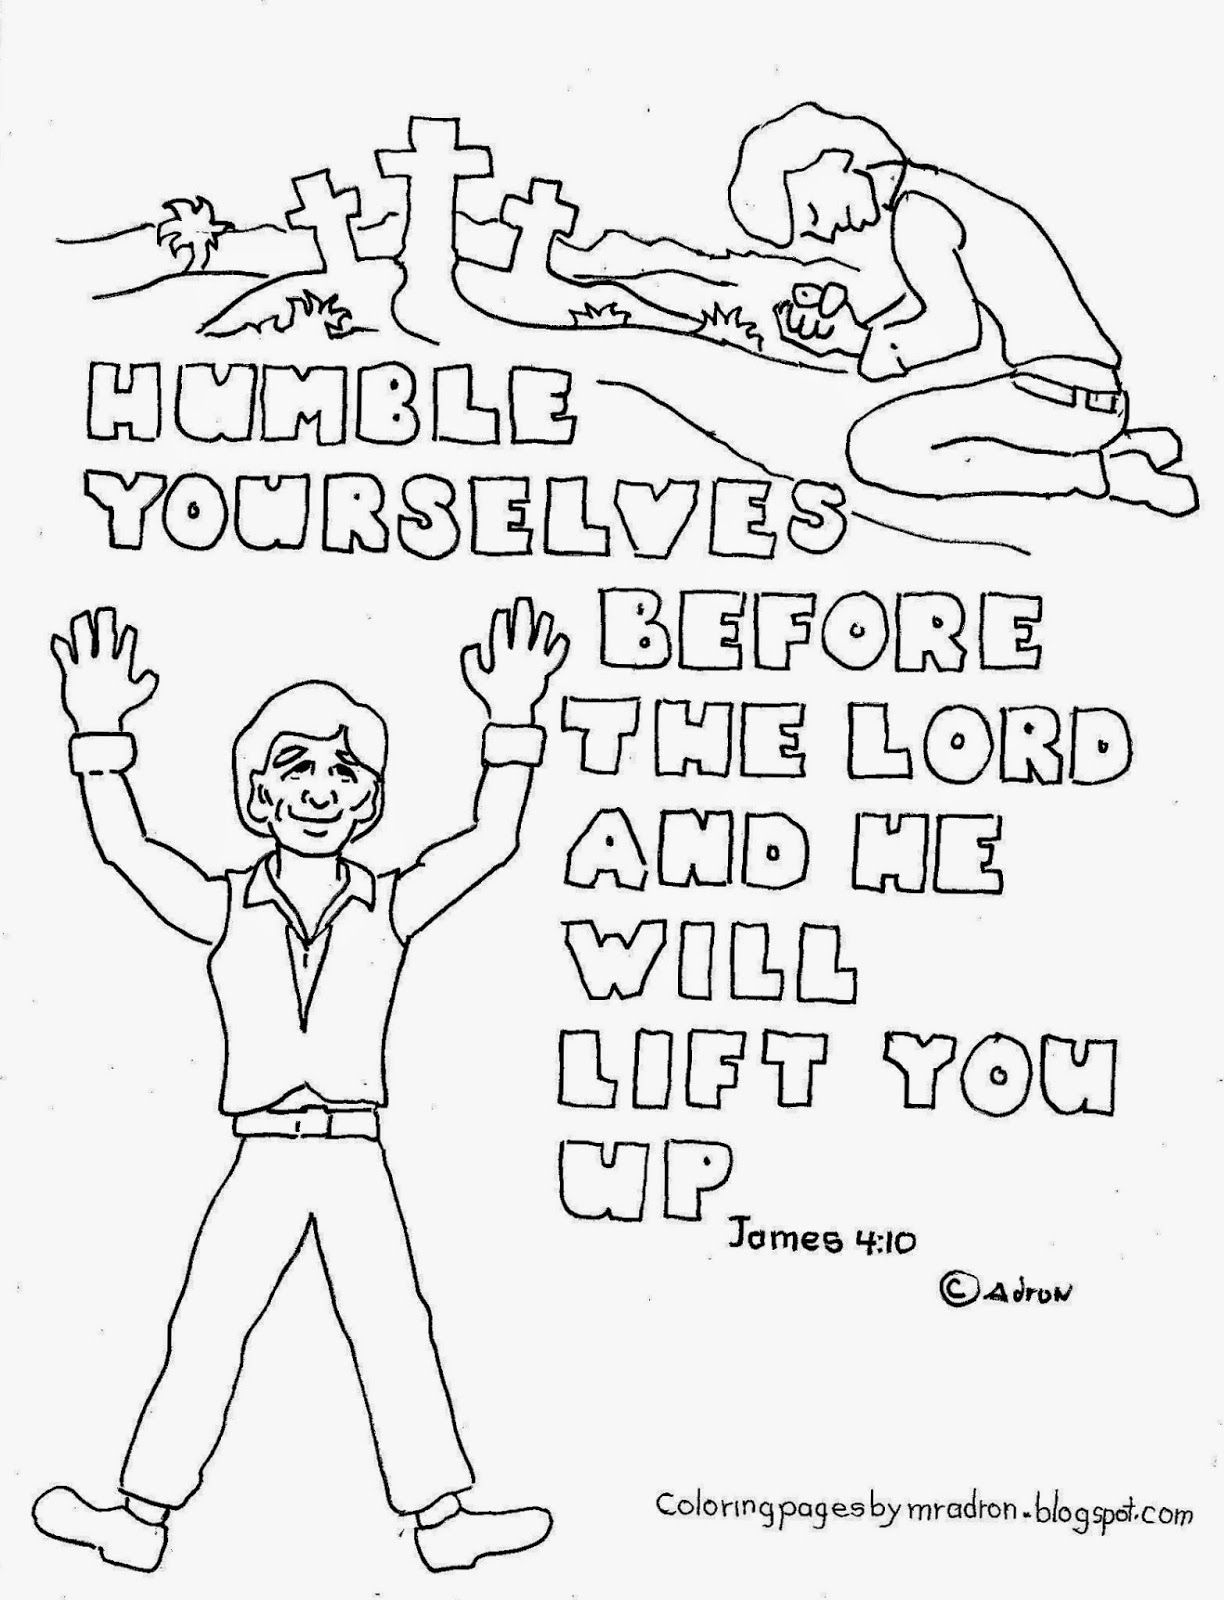 Bible verse coloring page. see more at my blog. http